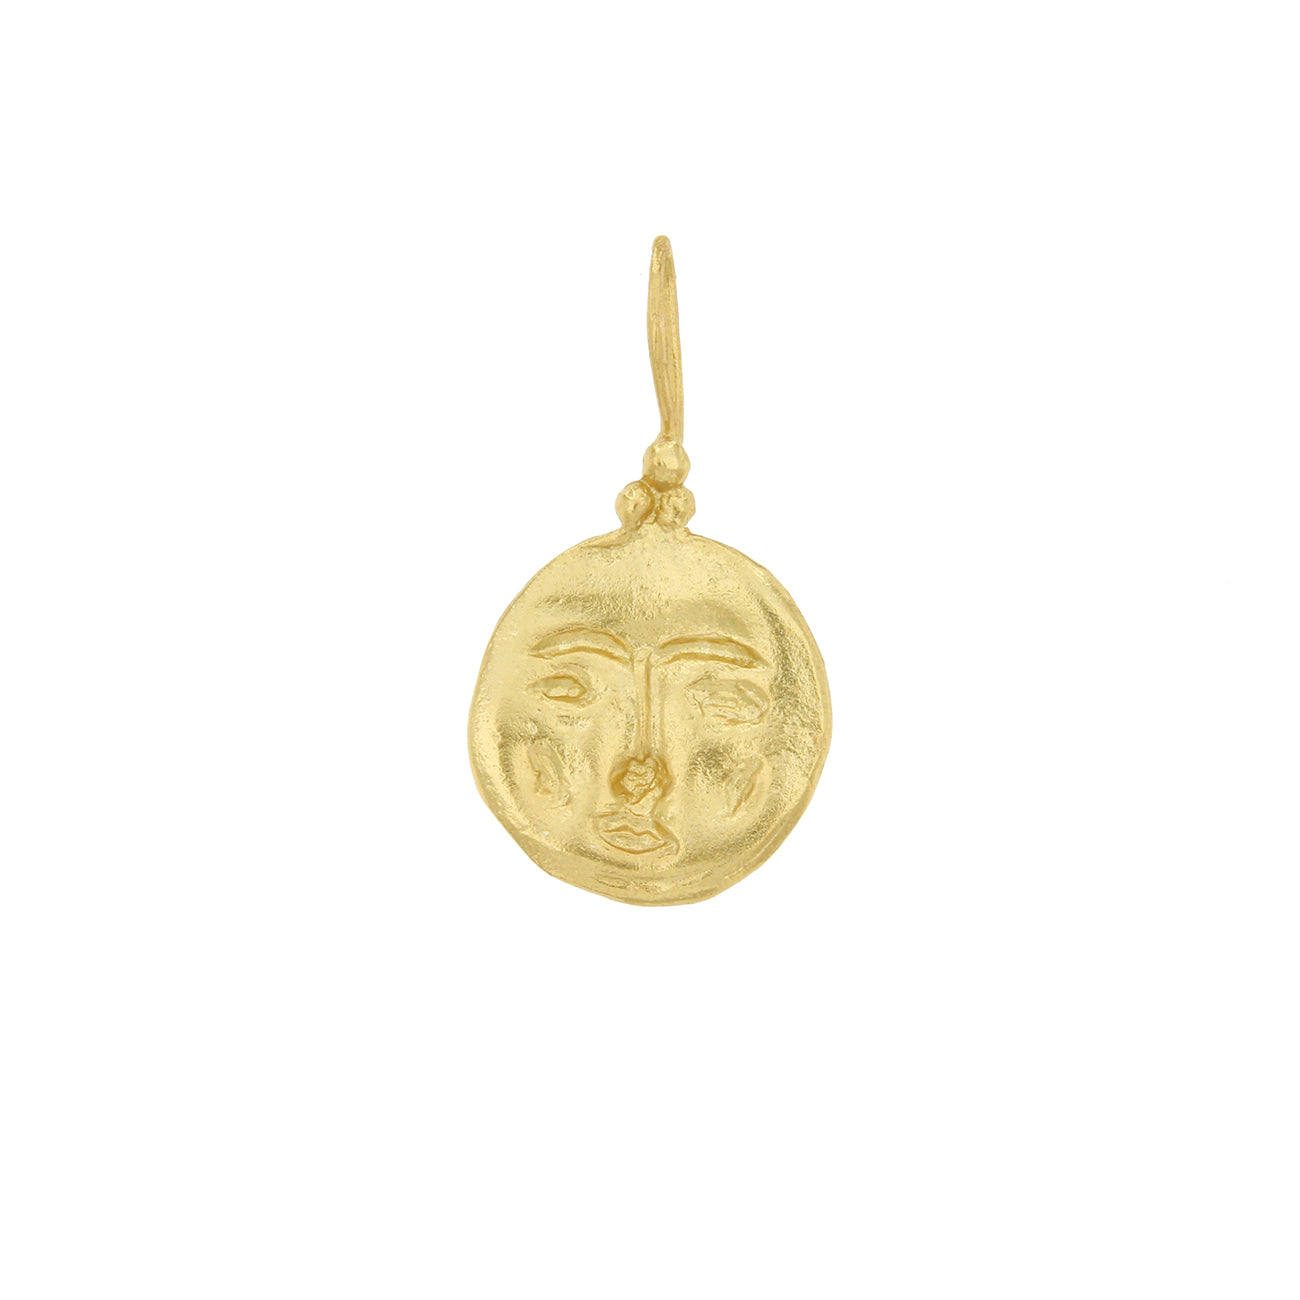 Cleopatras bling moon face pendant necklace the slow mode cleopatras bling moon face pendant necklace mozeypictures Choice Image